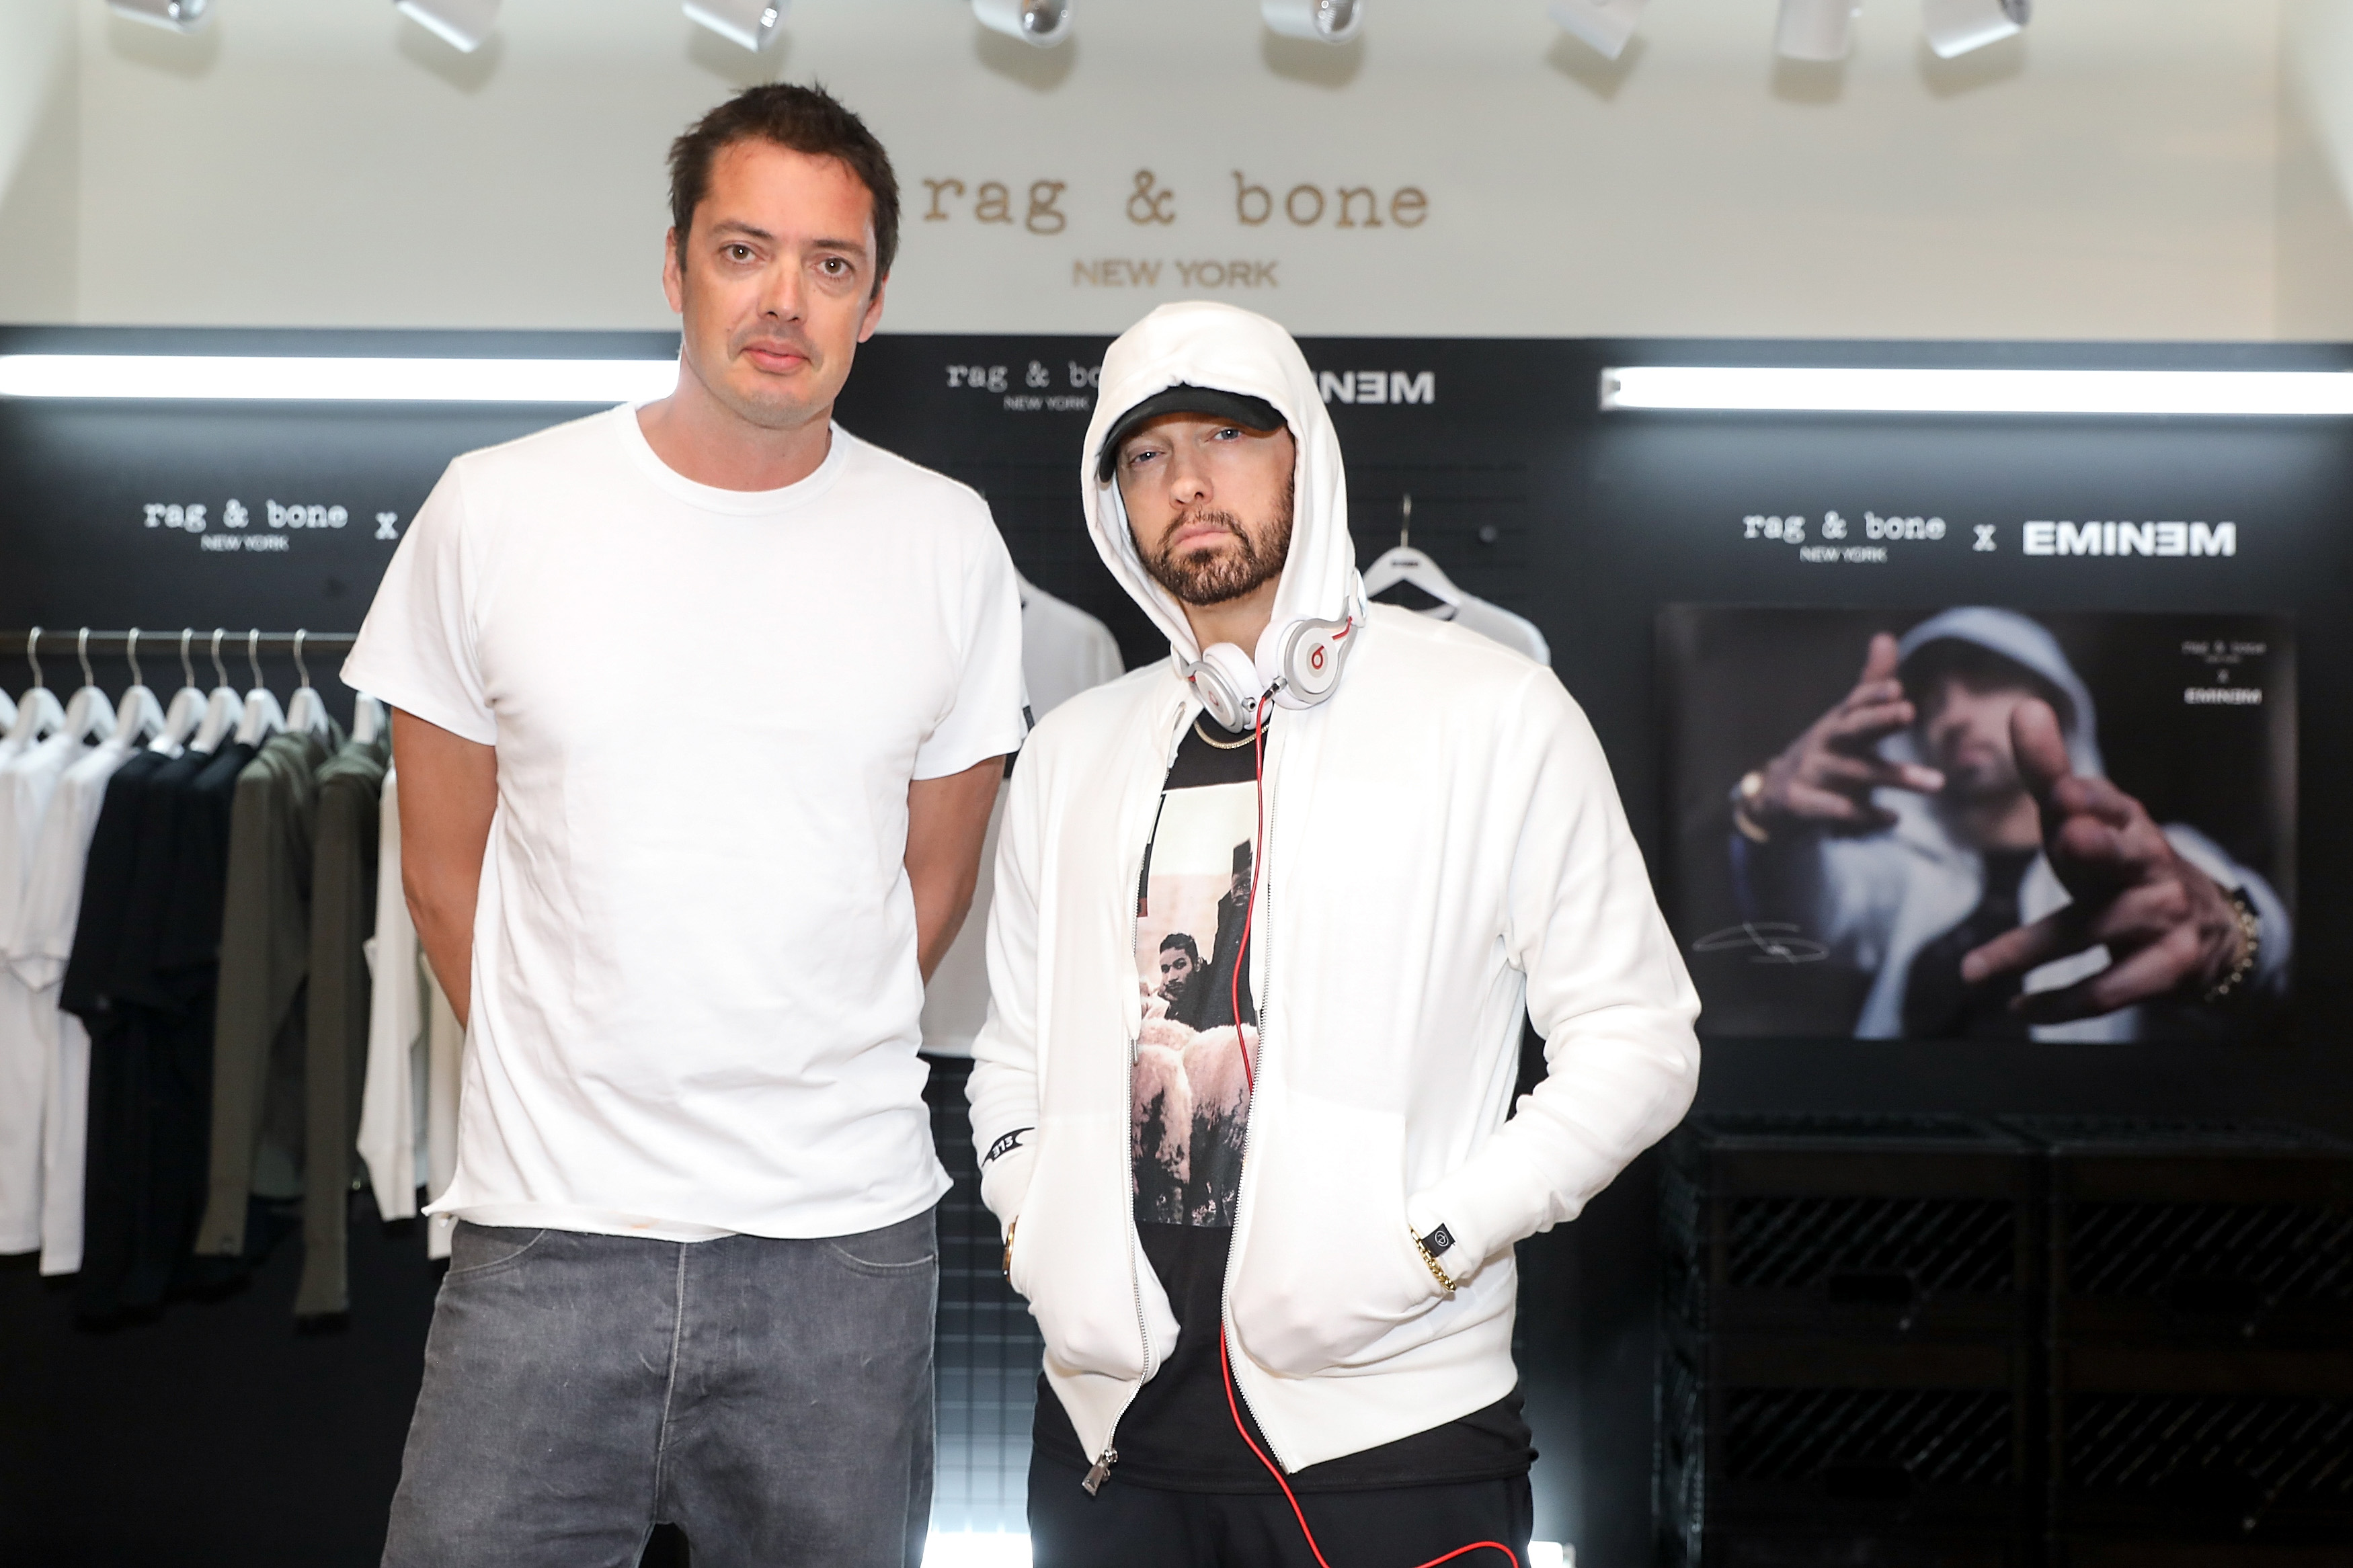 4b6396efd3453 Eminem Teams With rag   bone For Clothing Collaboration And London Pop-Up  Shop.